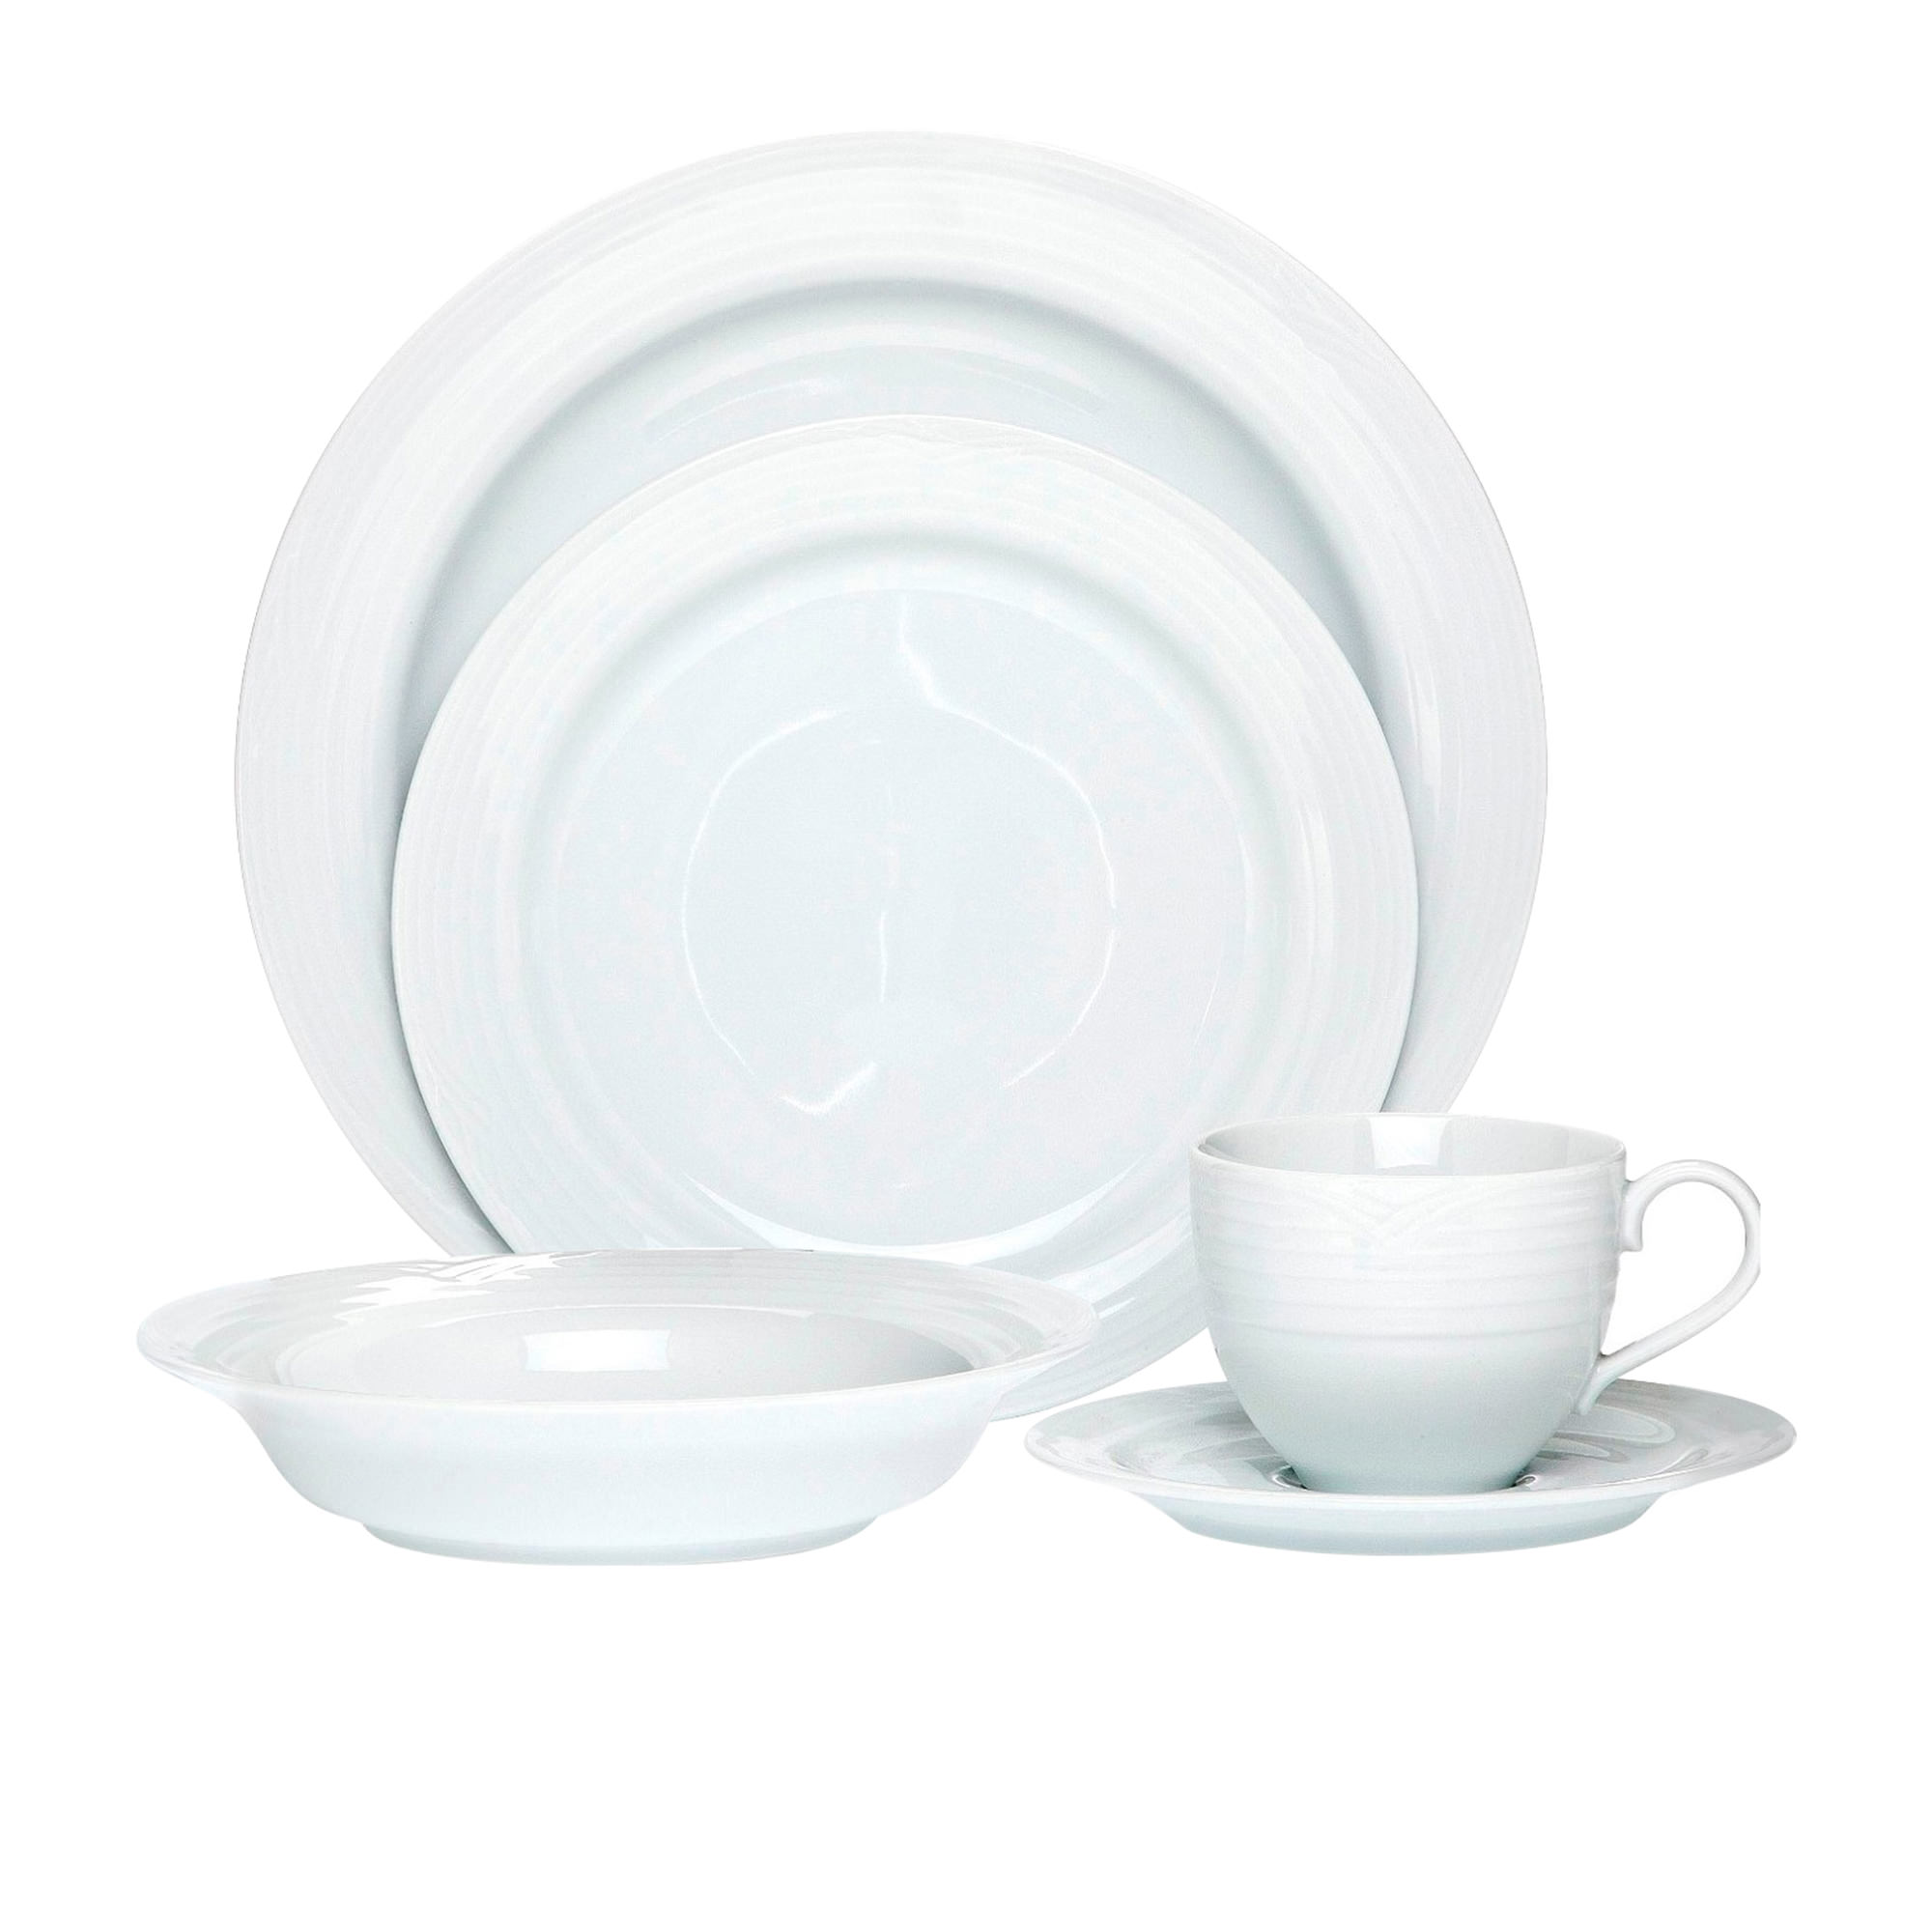 Noritake Arctic White 20pc Dinner Set